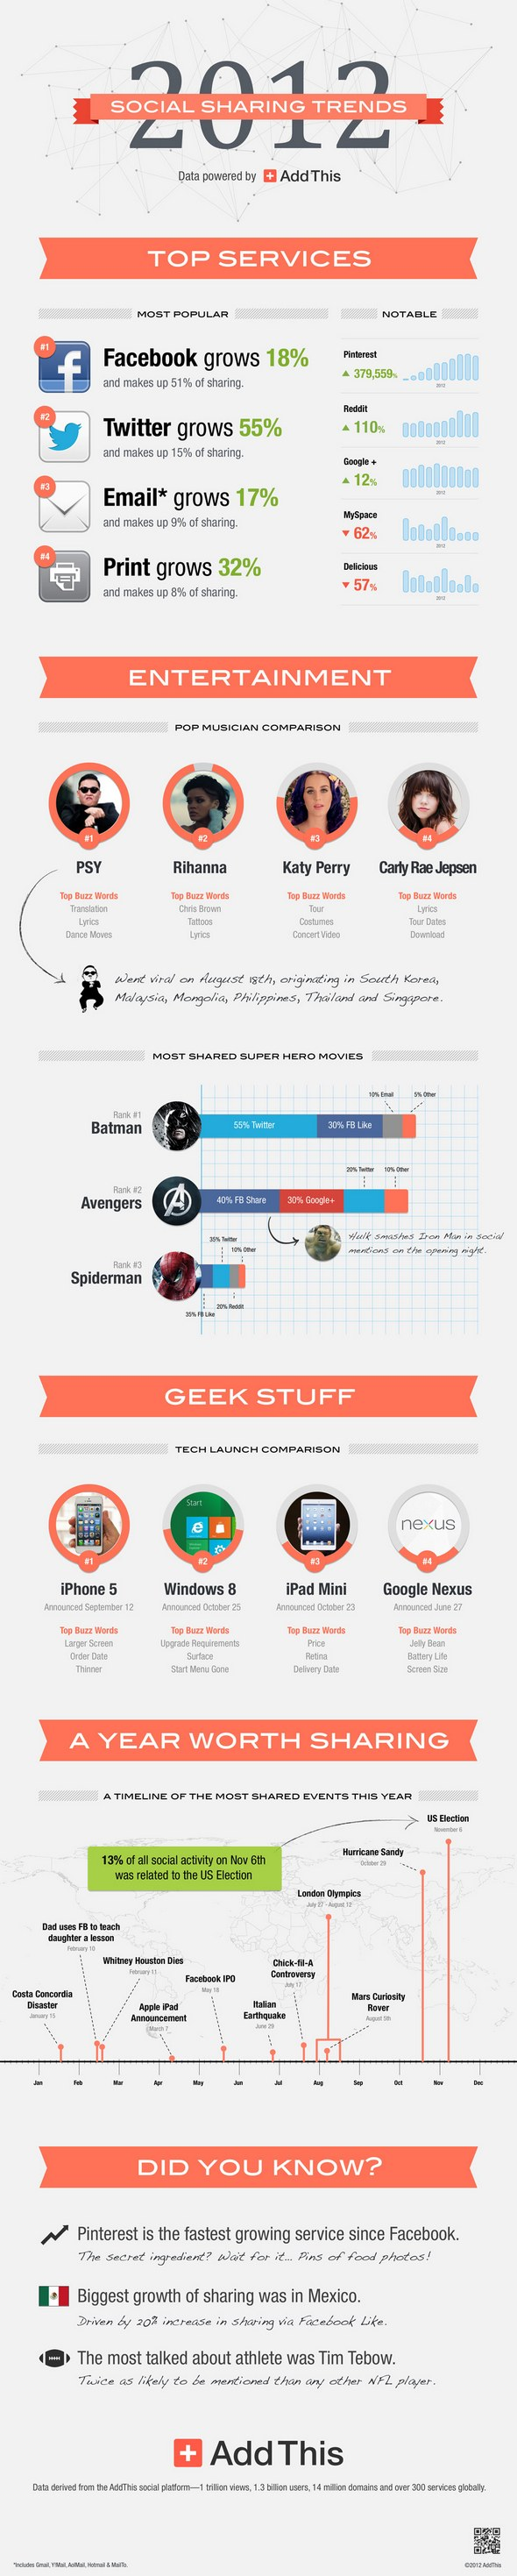 2012_addthis_infographic.jpg